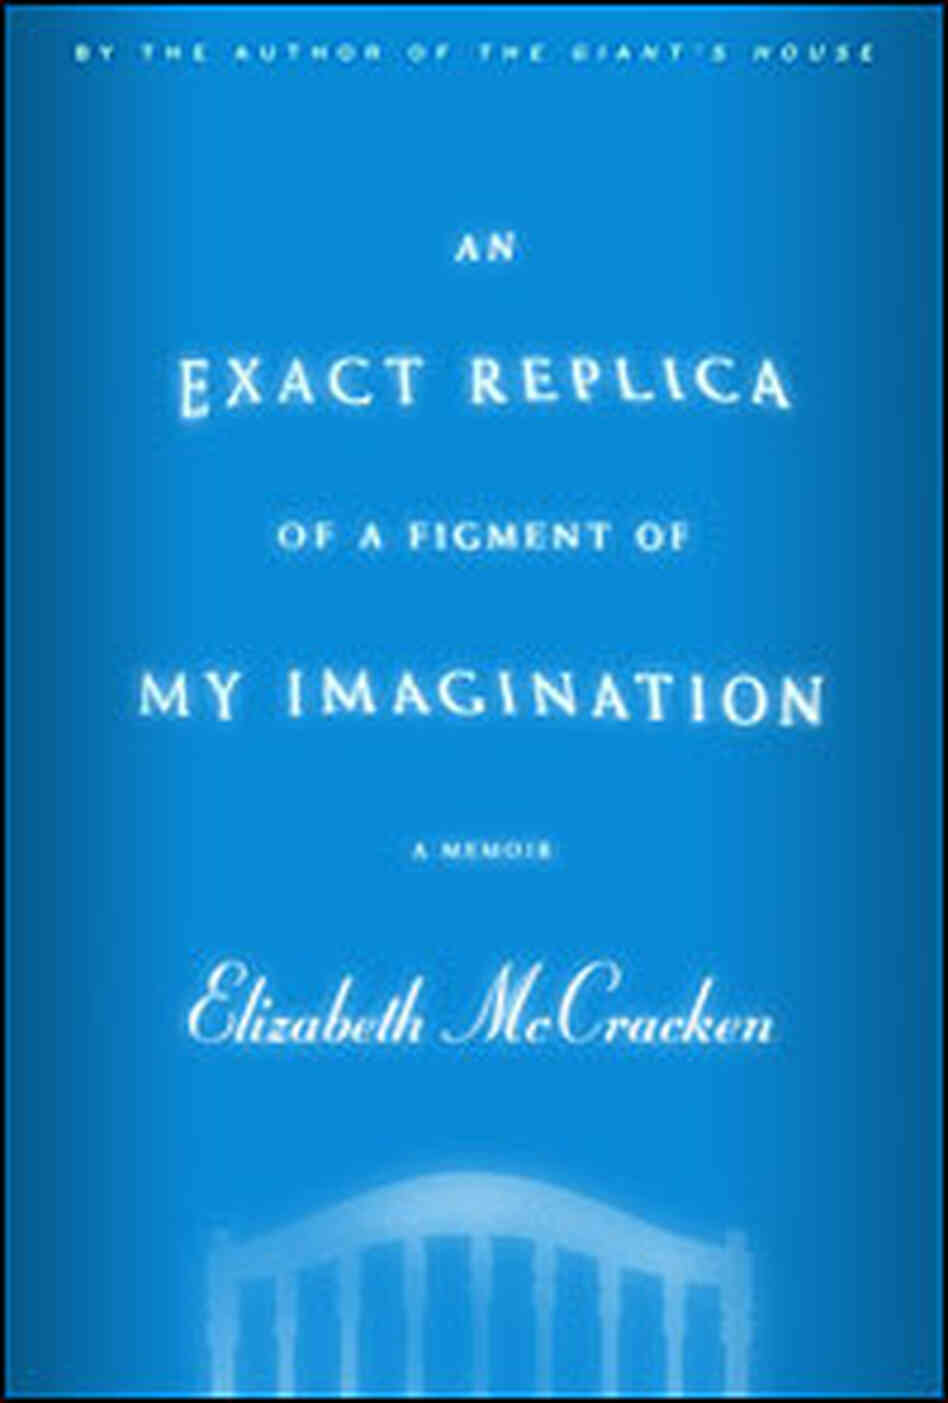 Cover of Elizabeth McCracken's 'An Exact Replica of a Figment of My Imagination'